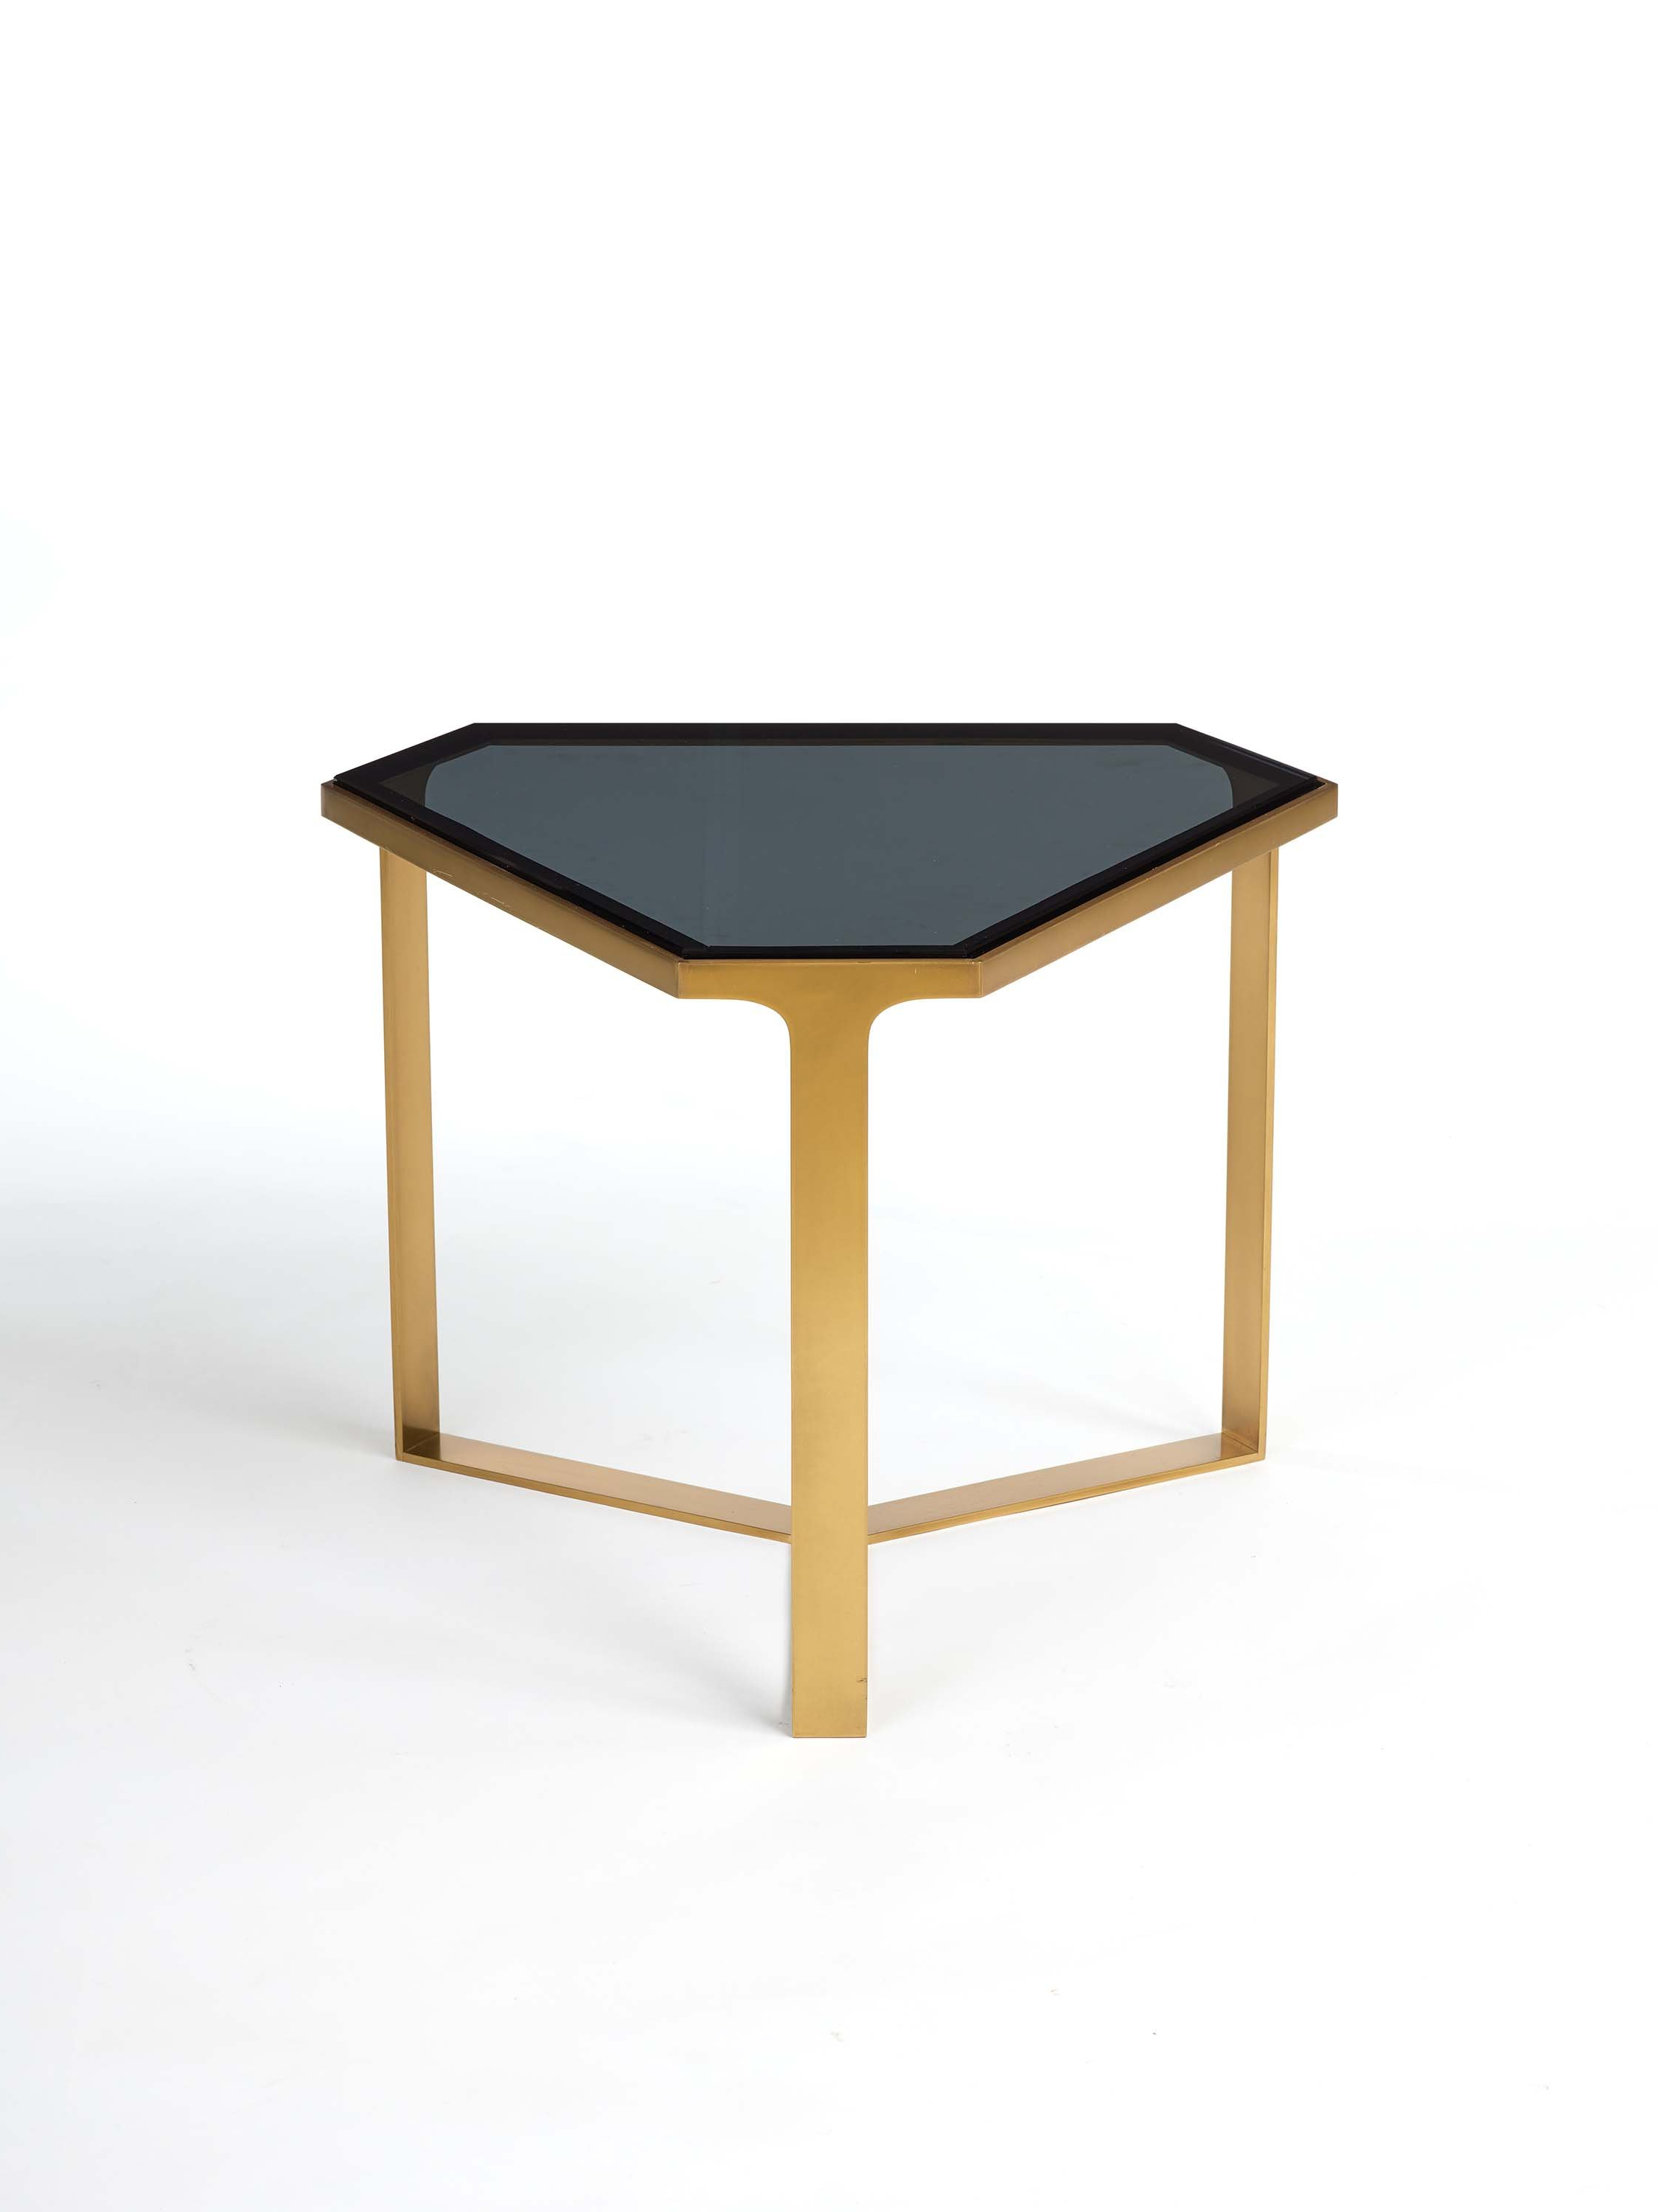 Popular Donghia Forma Table With Satin Brass Base And Gray Glass Top For Throughout Forma Cocktail Tables (View 3 of 20)